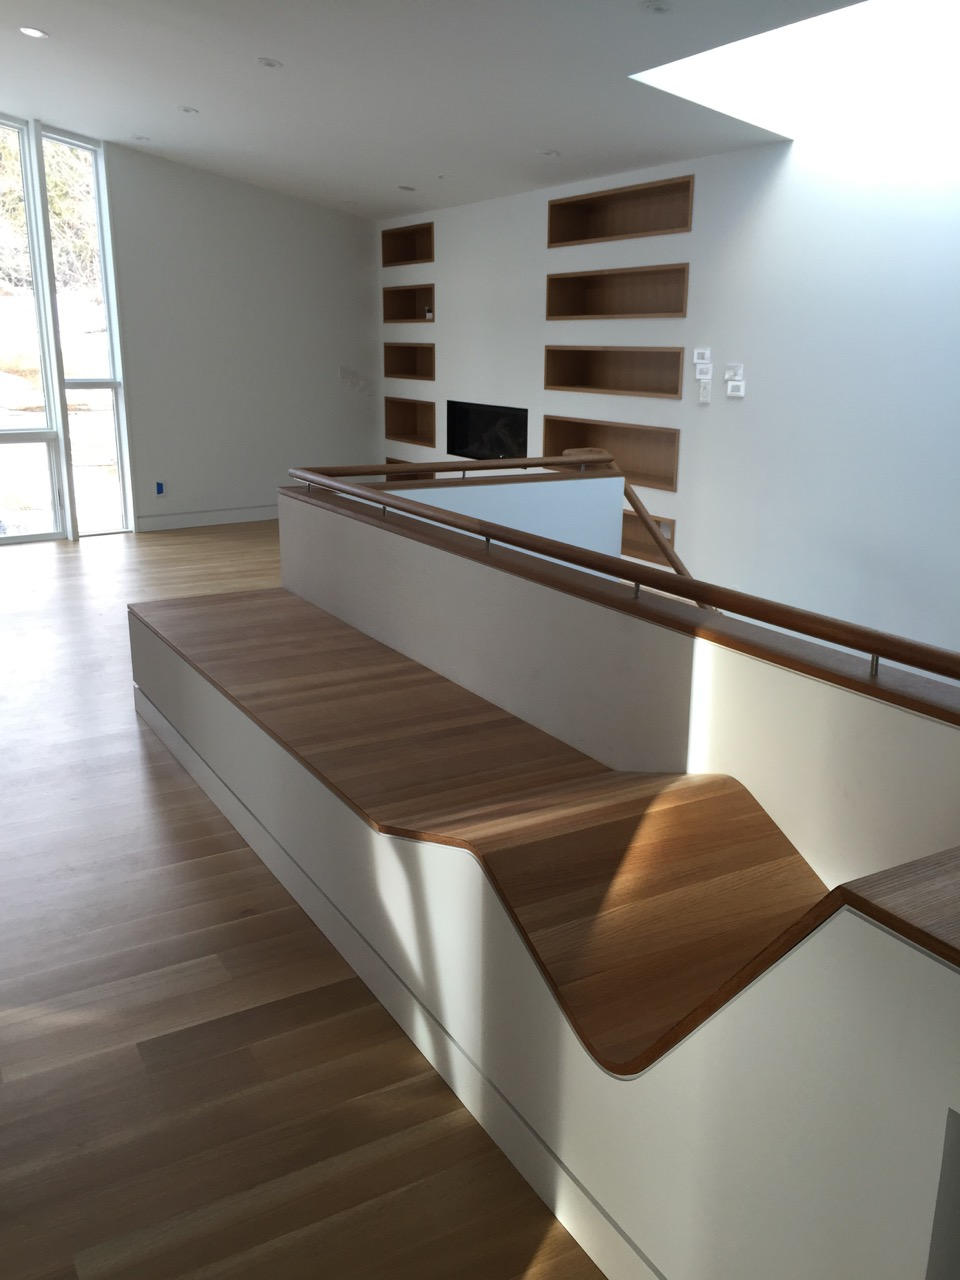 LEVITT ARCHITECTS » Upstairs bench and bookcase